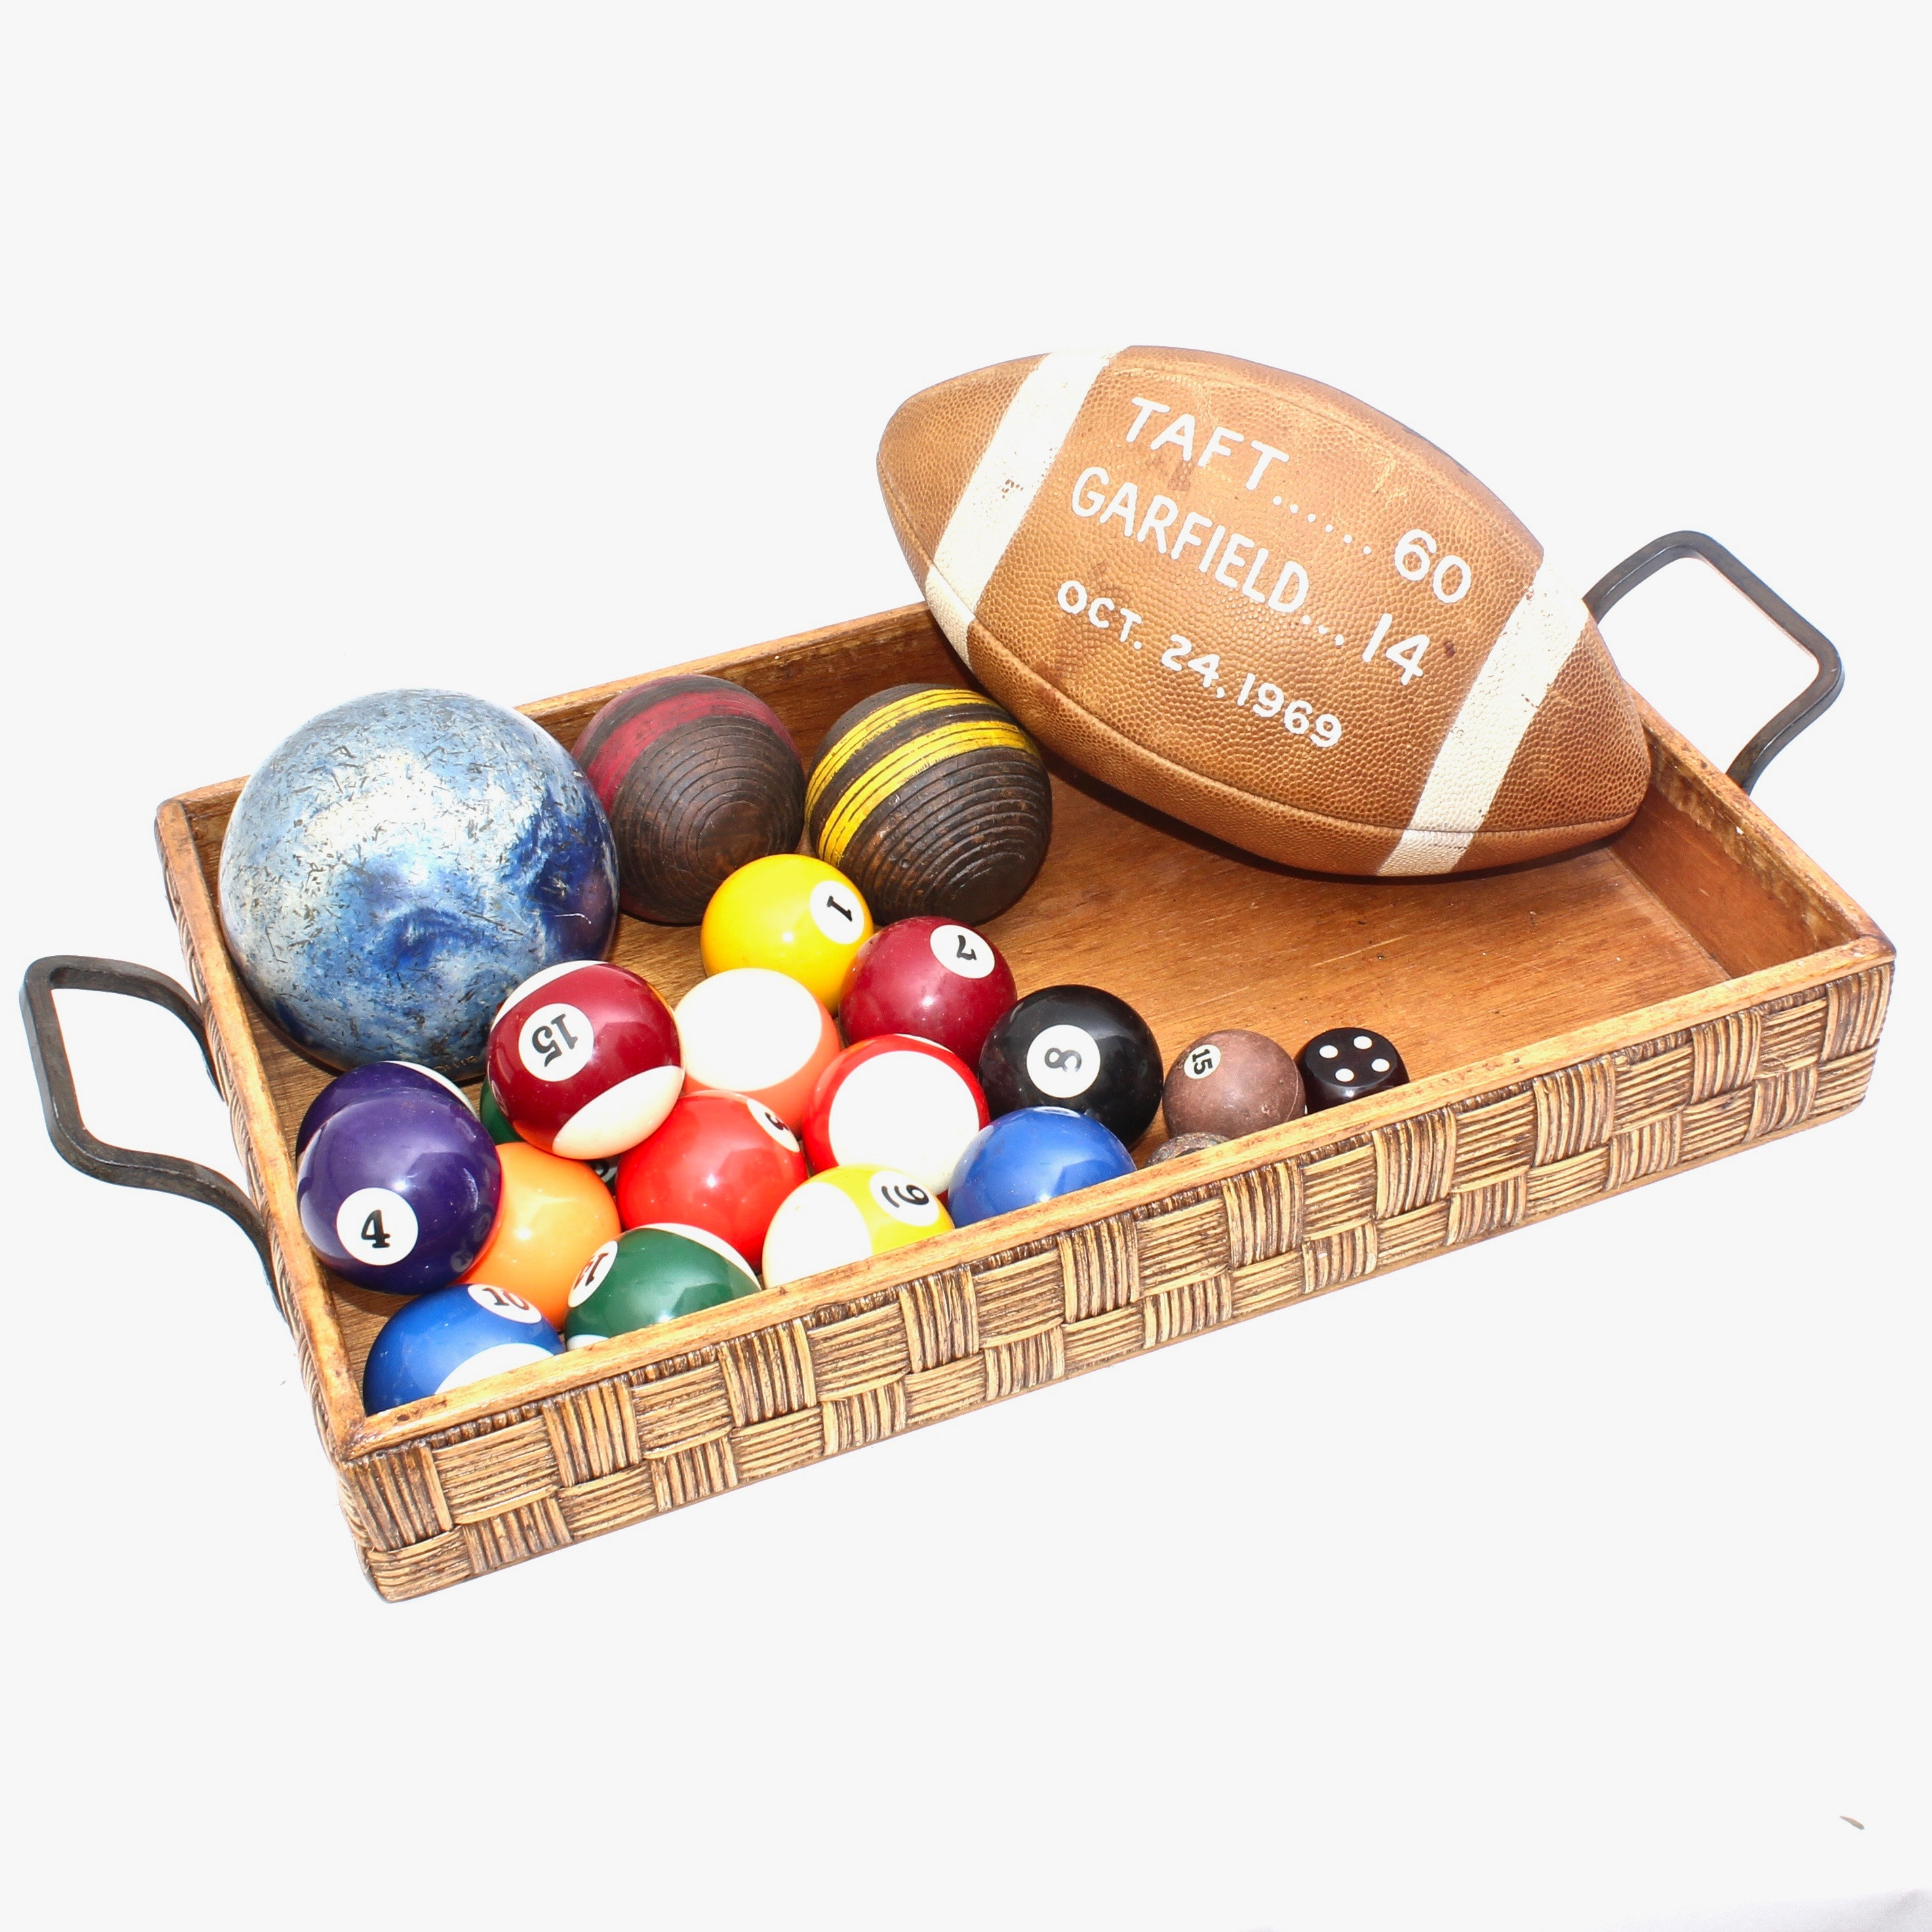 Vintage Sports and Table Game Accessories